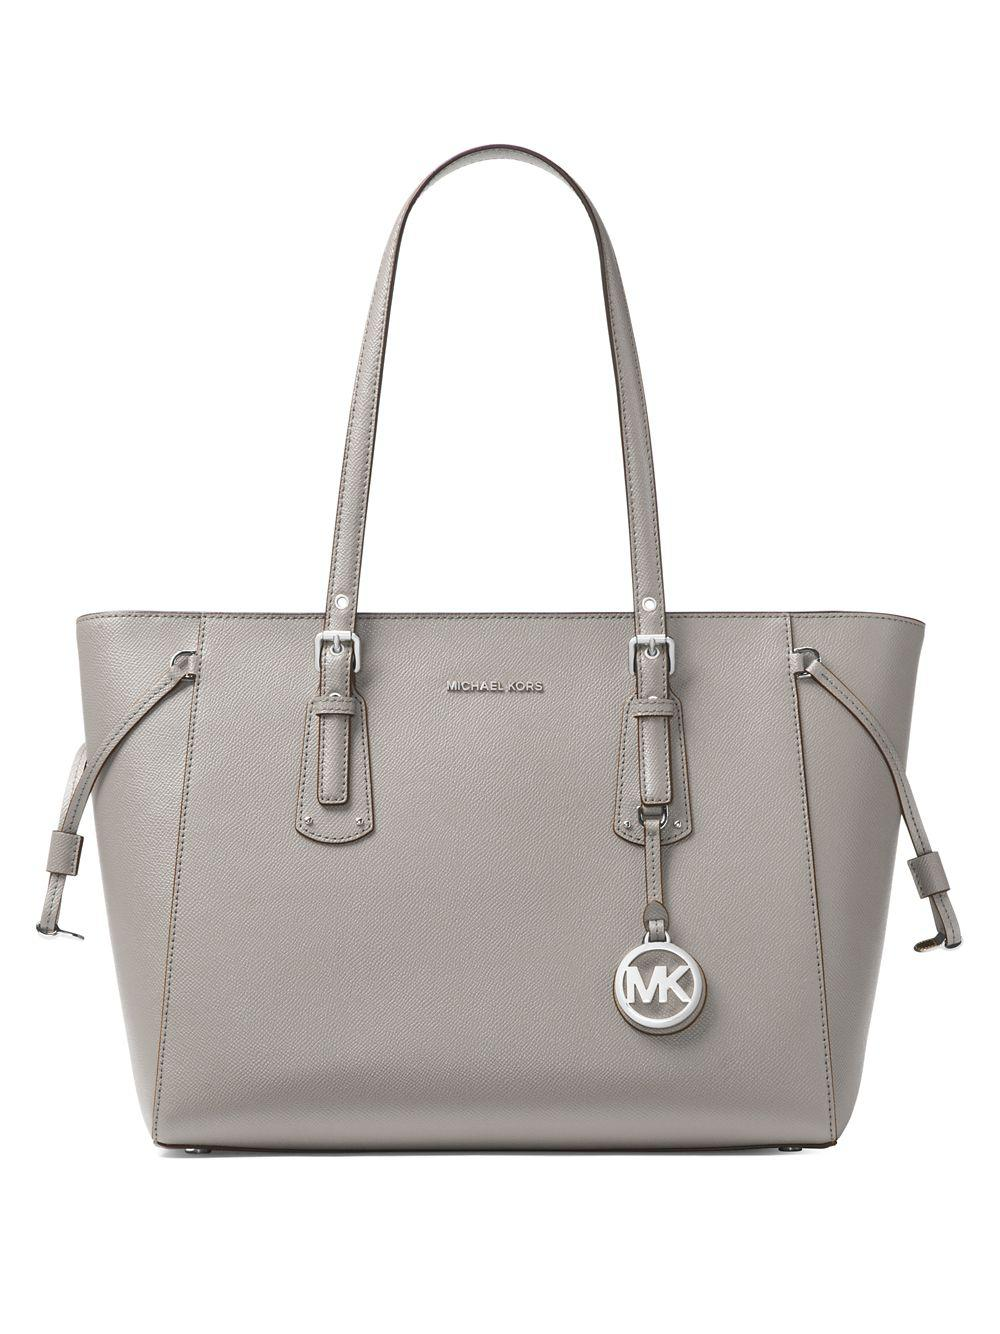 fdc821c96de9 Michael Michael Kors Voyager Leather Tote in Gray - Lyst